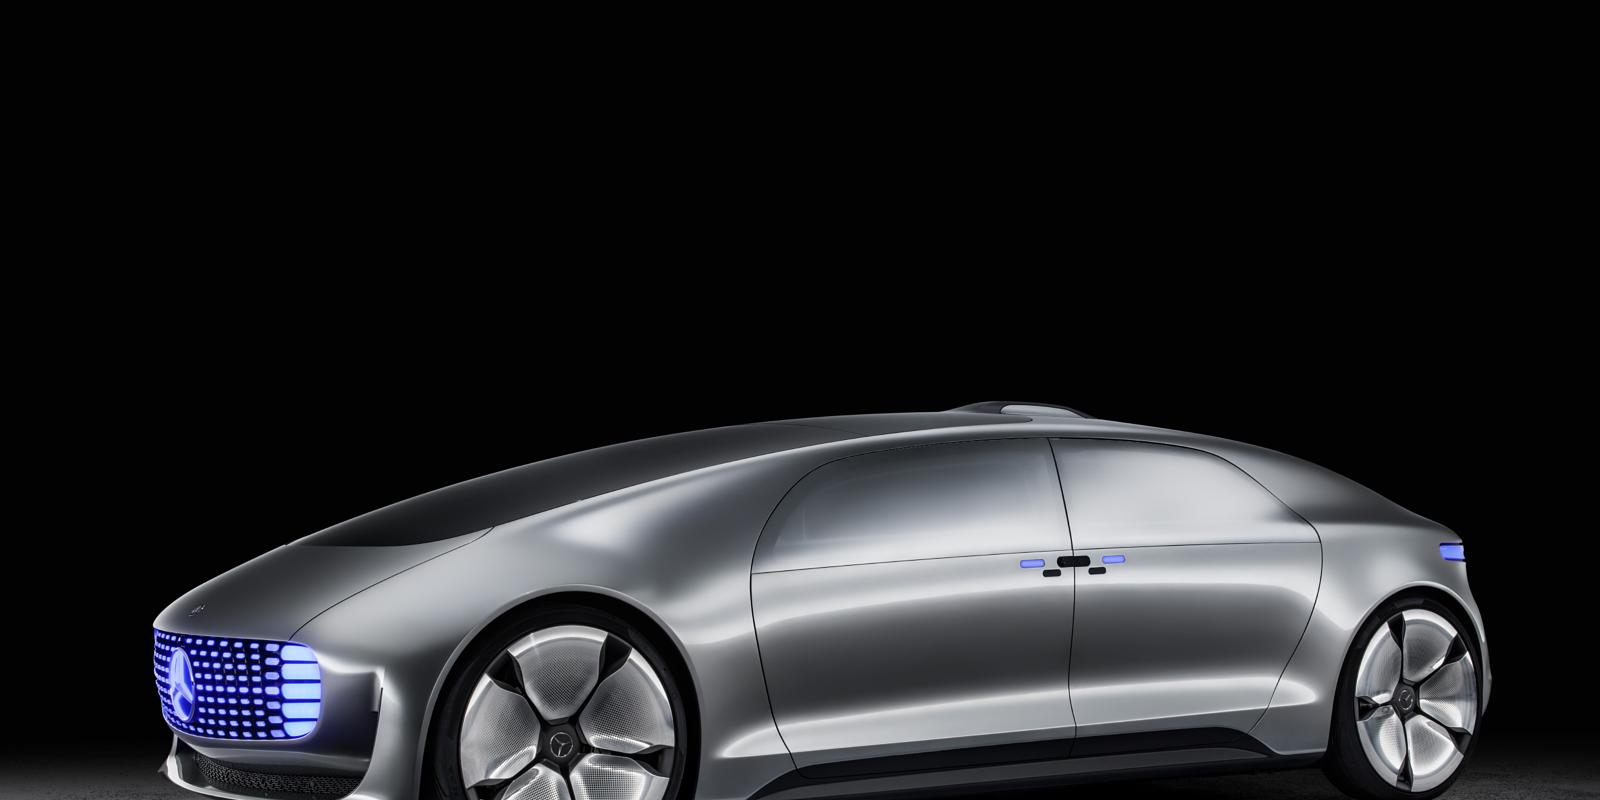 Mercedes benz brings style to self driving at ces 2015 for Mercedes benz technician